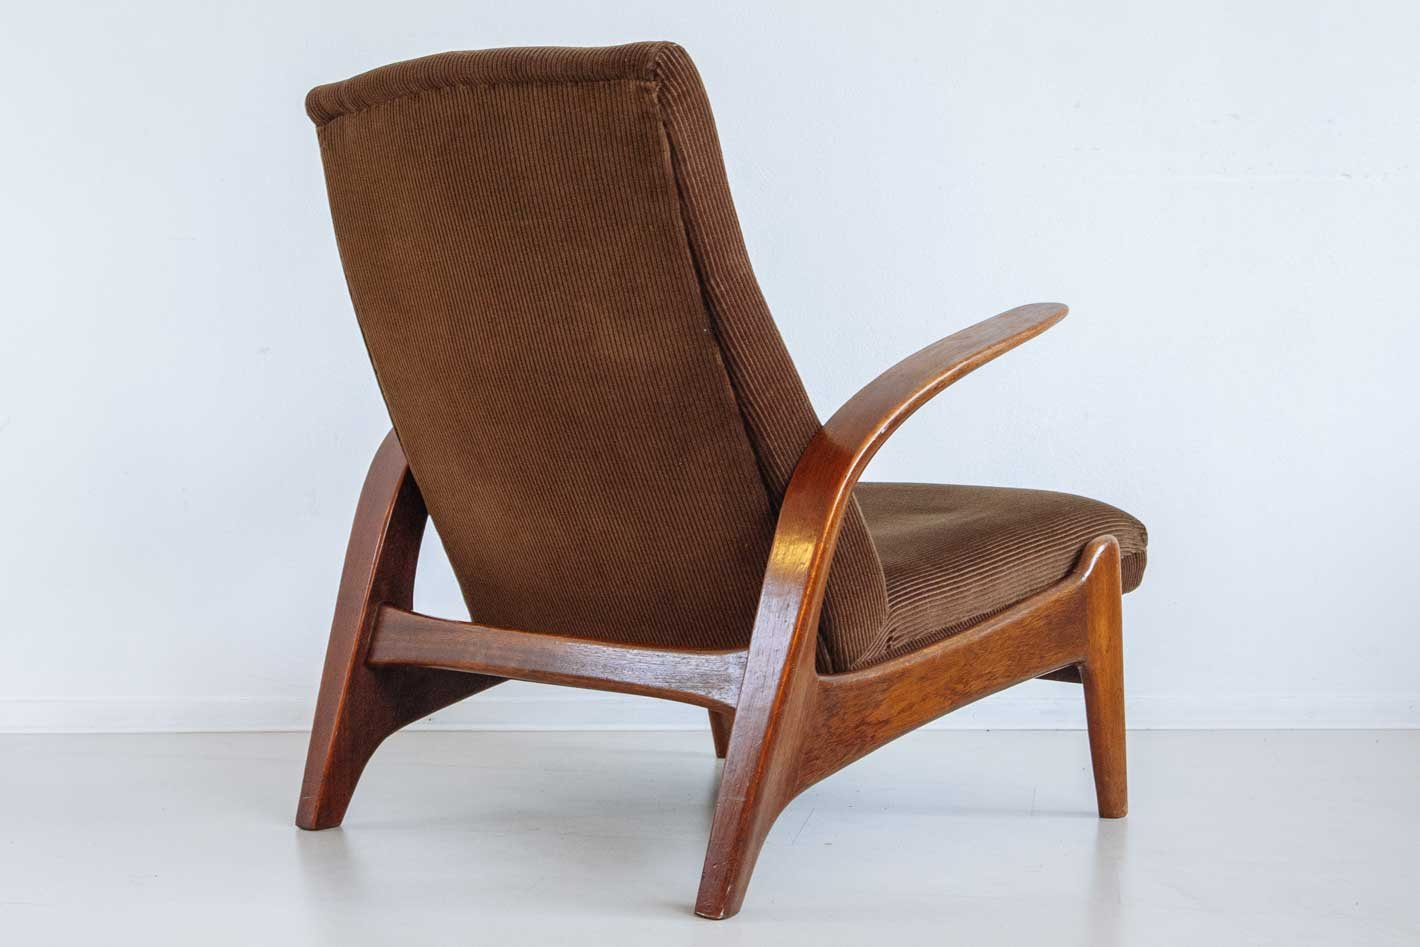 Vintage Lounge Chair and Footstool by Gimson  Slater for